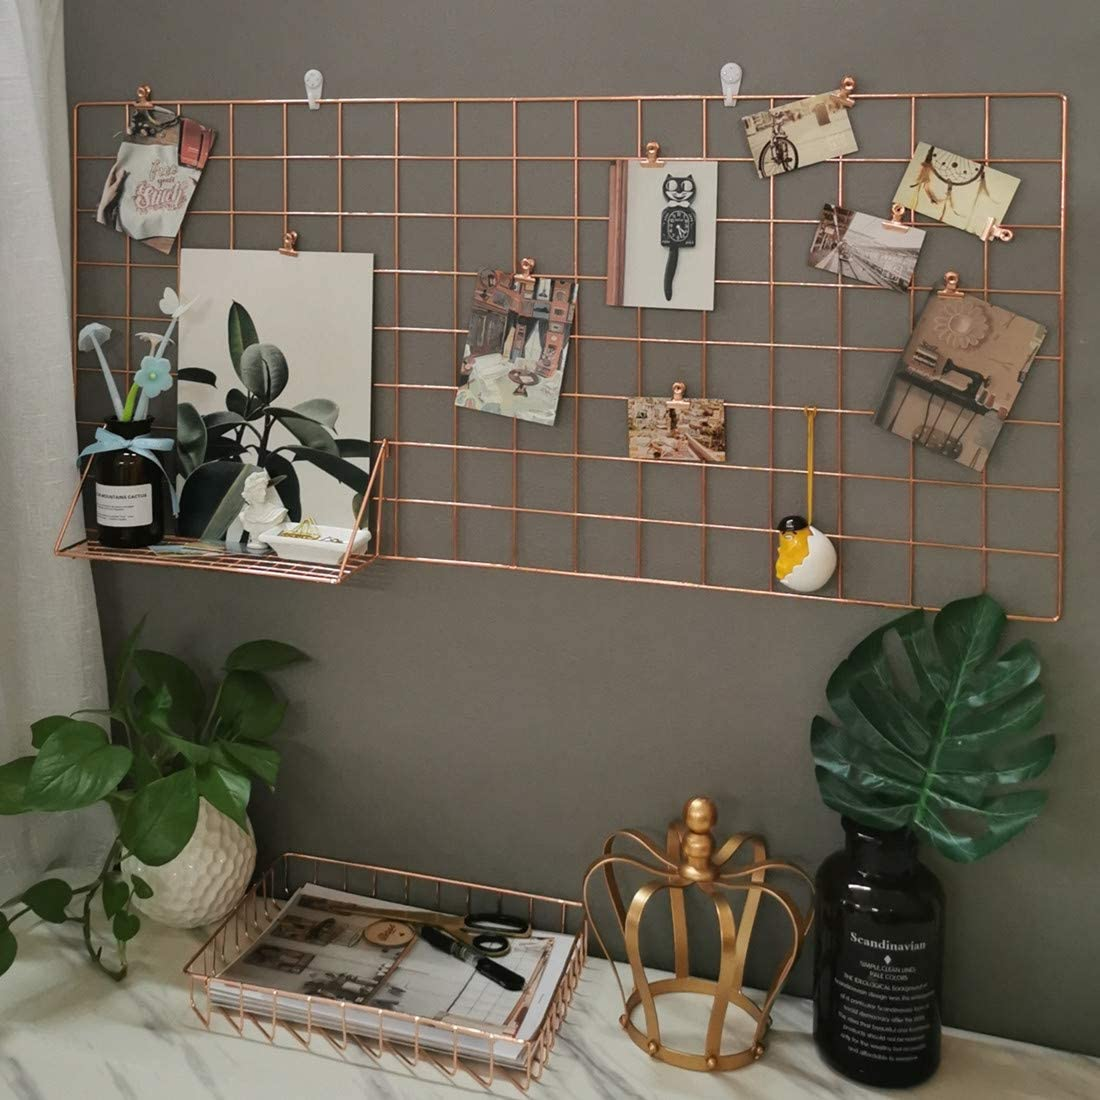 GRIDYMEN Multifunction Electroplated Bling Metal Mesh Grid Panel, Wall Photo Artwork Display and Organizer for College Dorm Living Room, Pack of 1 Pcs, 17.7